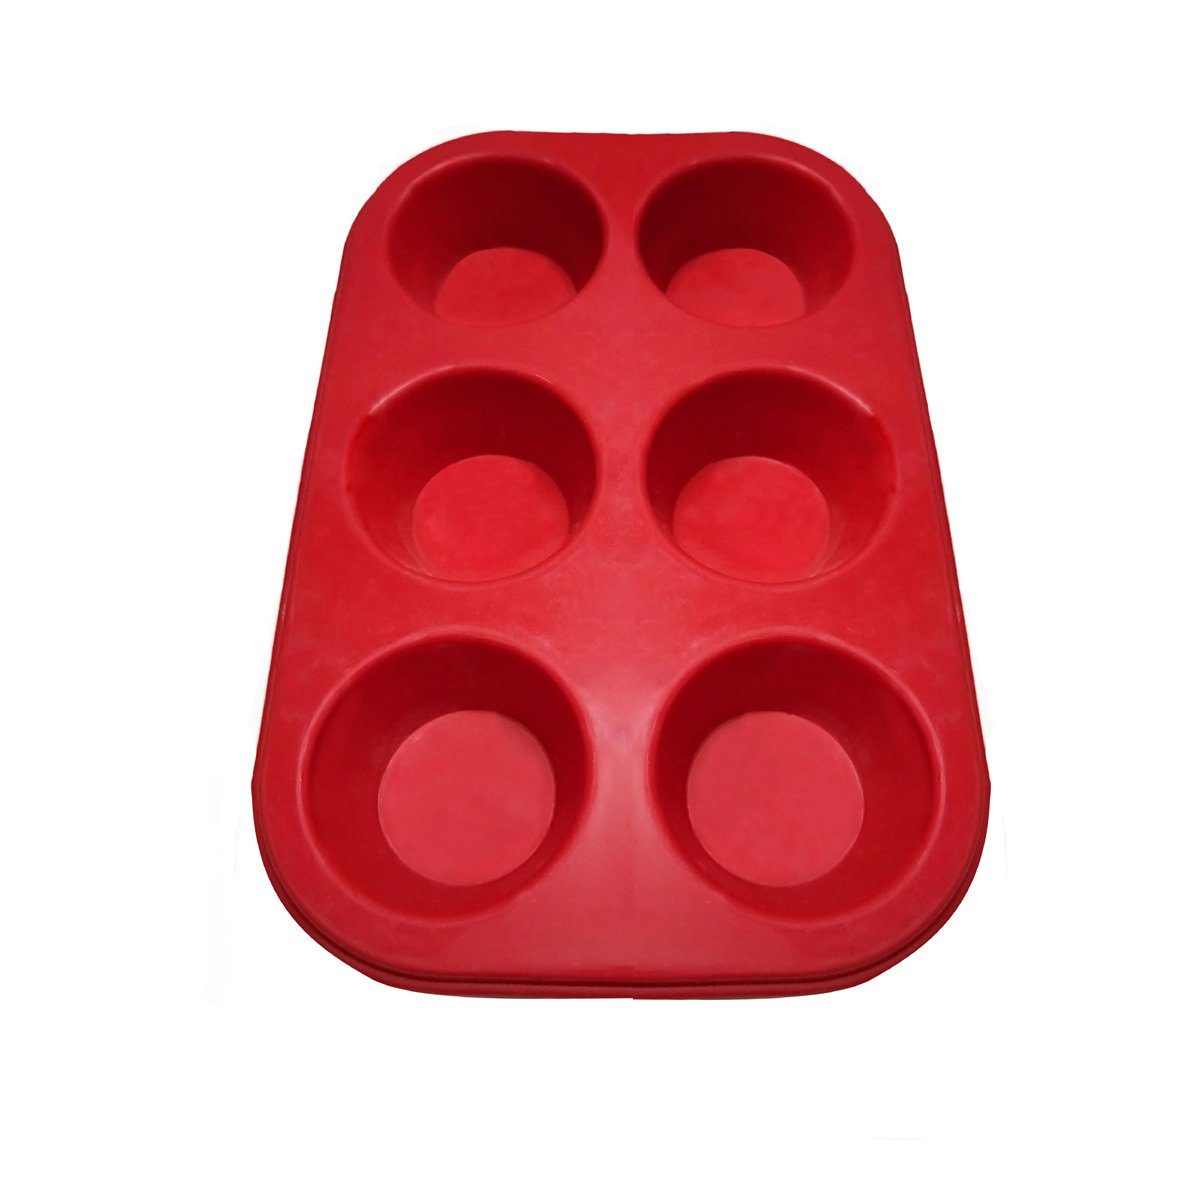 Aokinle Silicone Muffin Pan 6 Cup Non Stick Silicone Baking Mold for Cupcakes,BPA Free Cupcake Tray,Cake Baking Tools,Muffins and Brownies